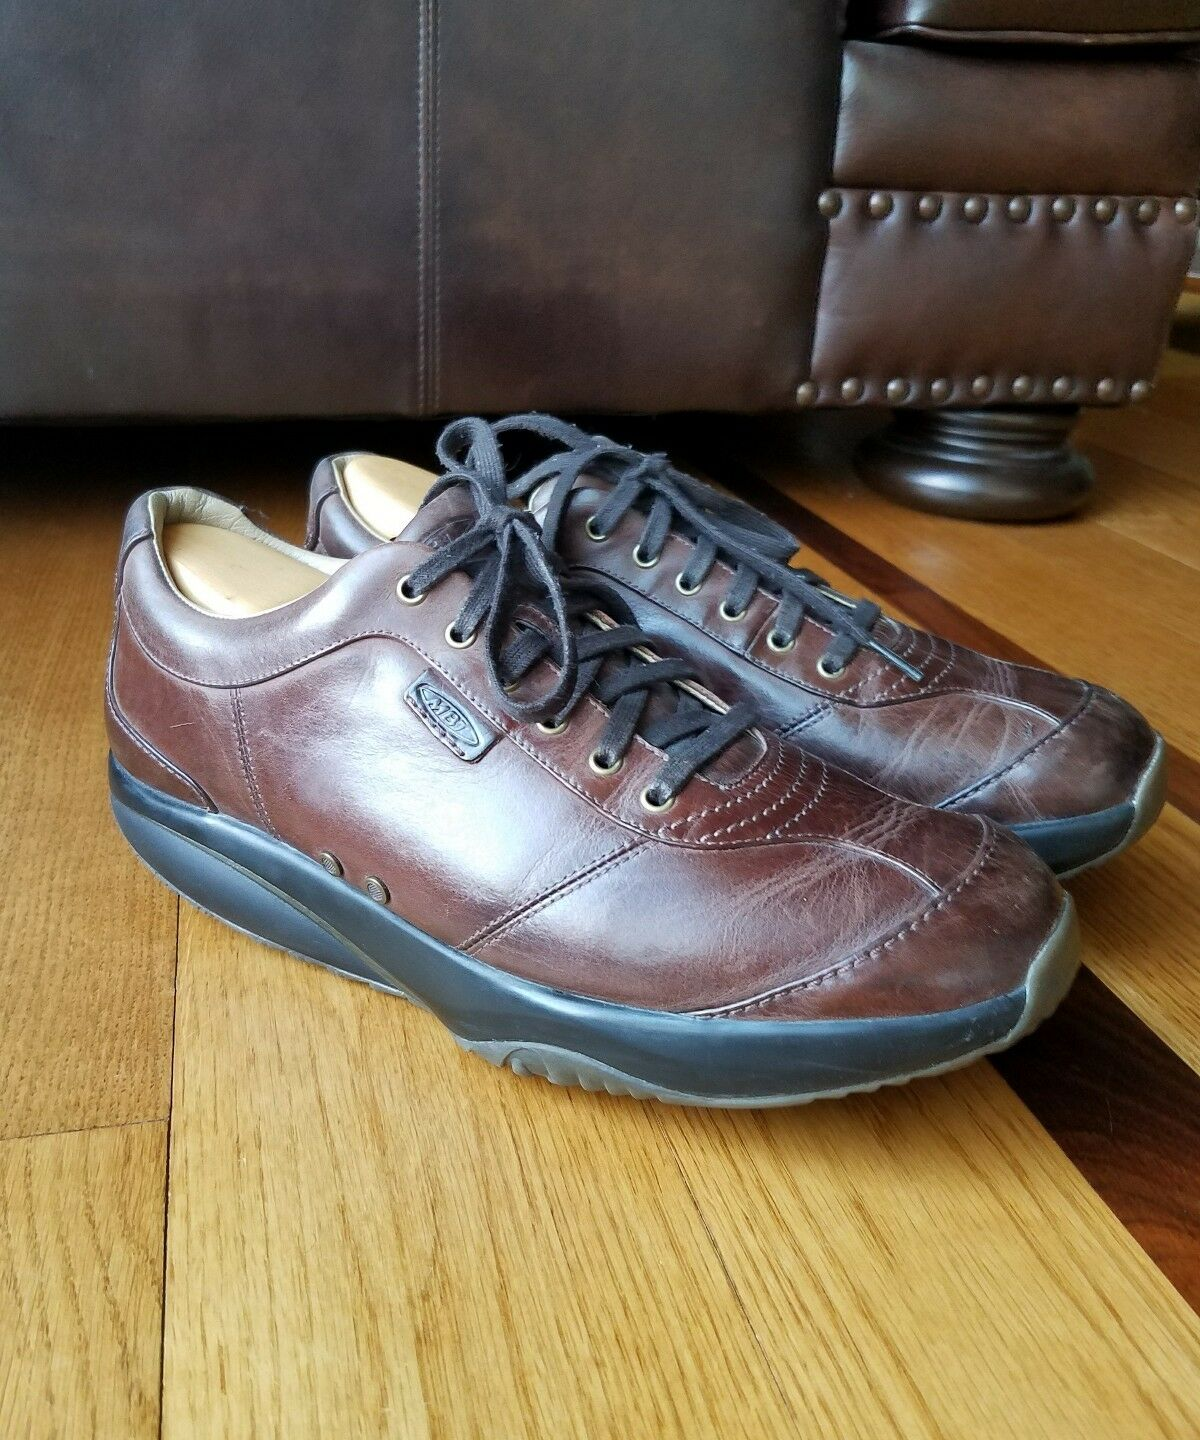 MBT Men's Swiss Engineered Brown Leather Walking Comfort shoes Size 12 400126-04